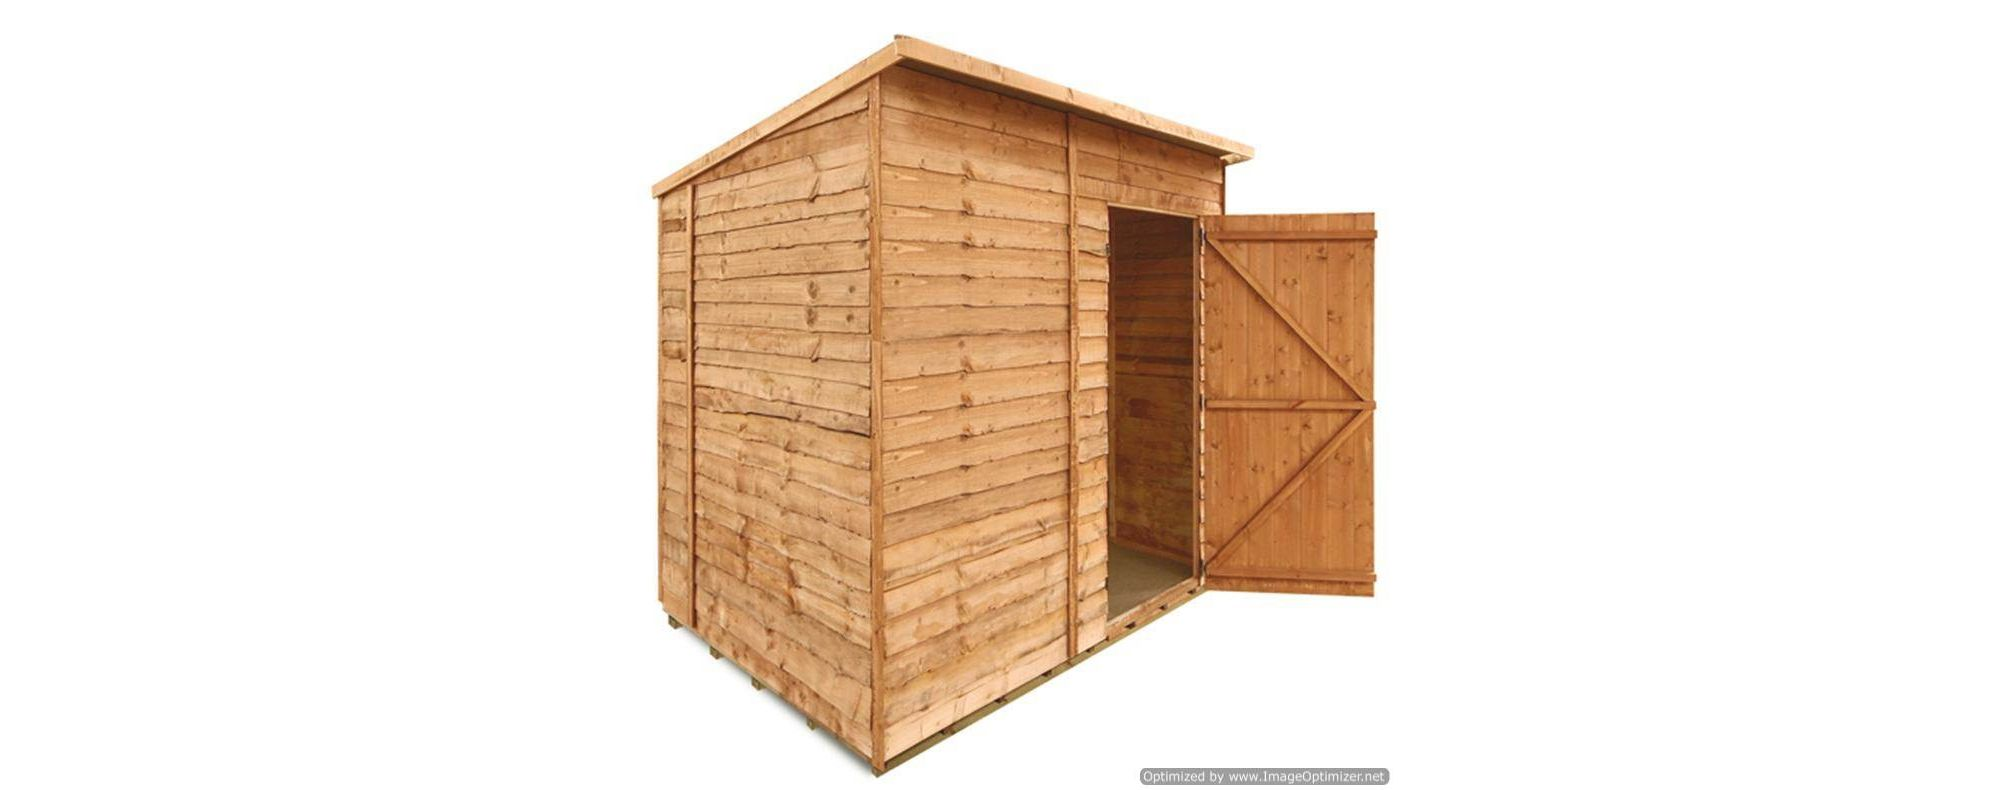 BillyOh 20 7 x 5 Windowless Rustic Overlap Pent Shed